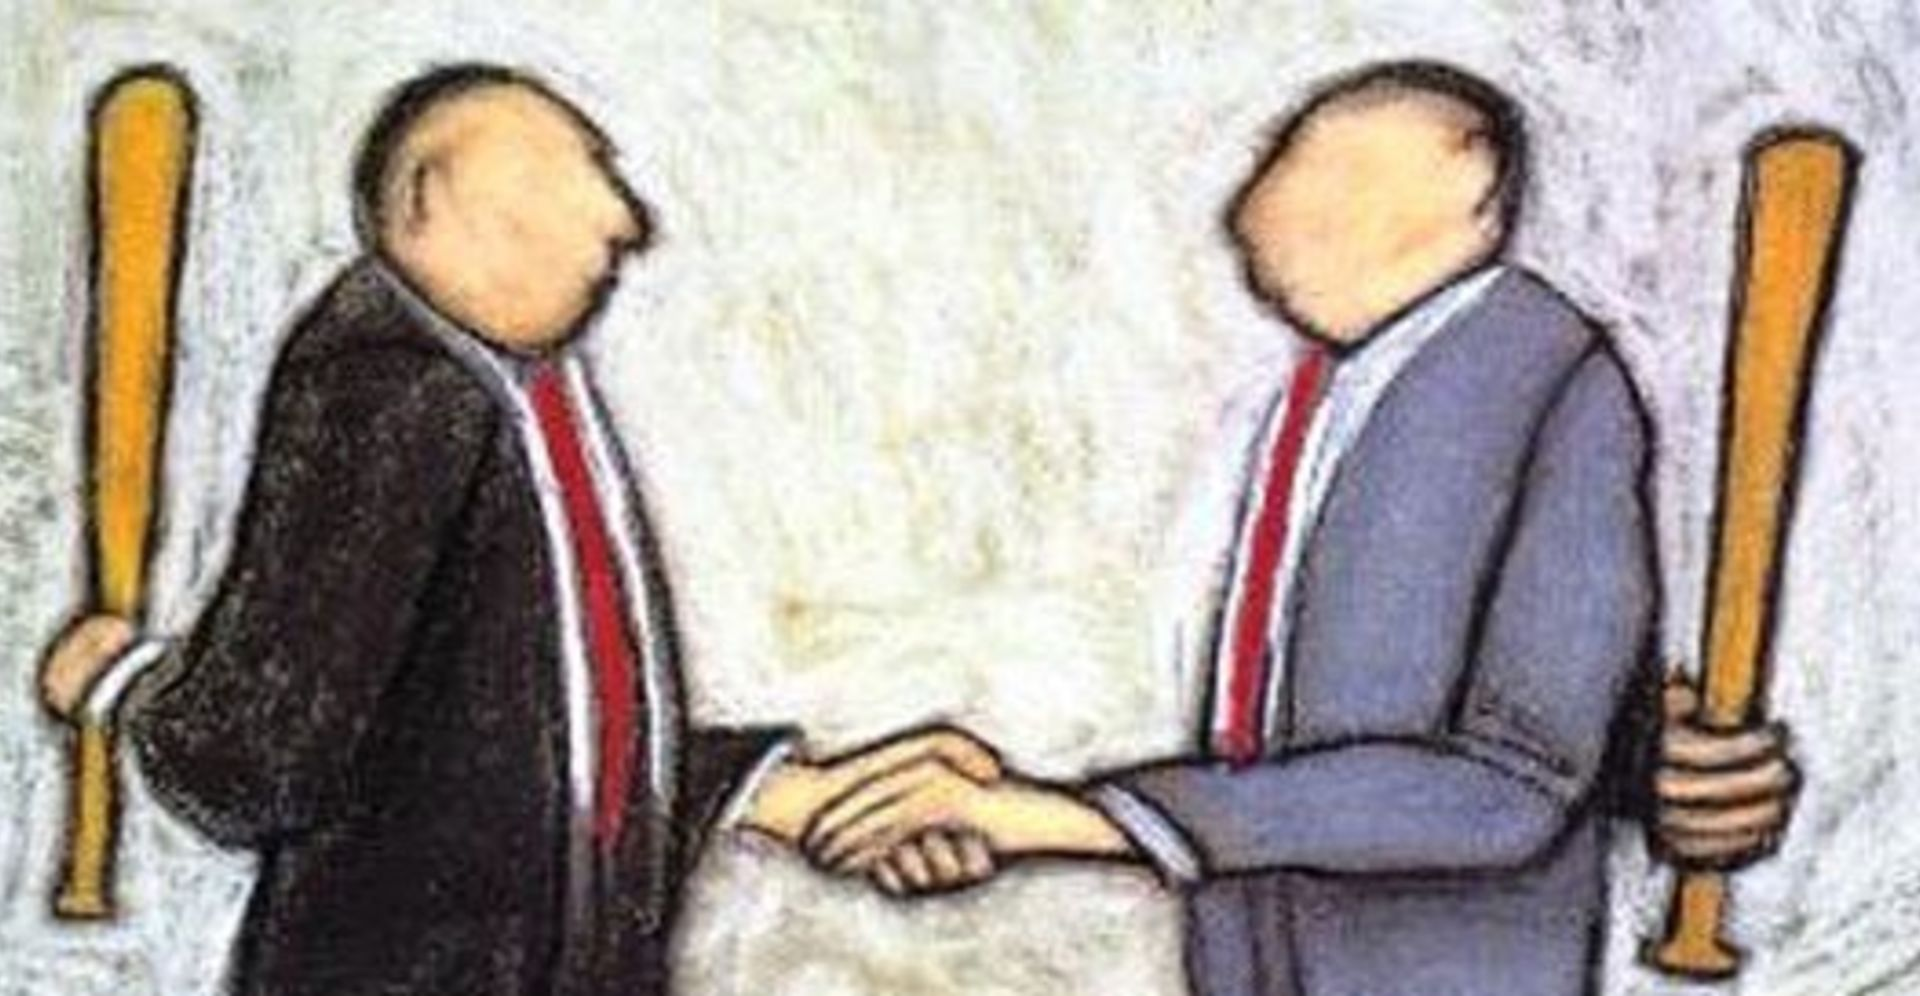 NEGOTIATING, ONCE IS NOT ENOUGH